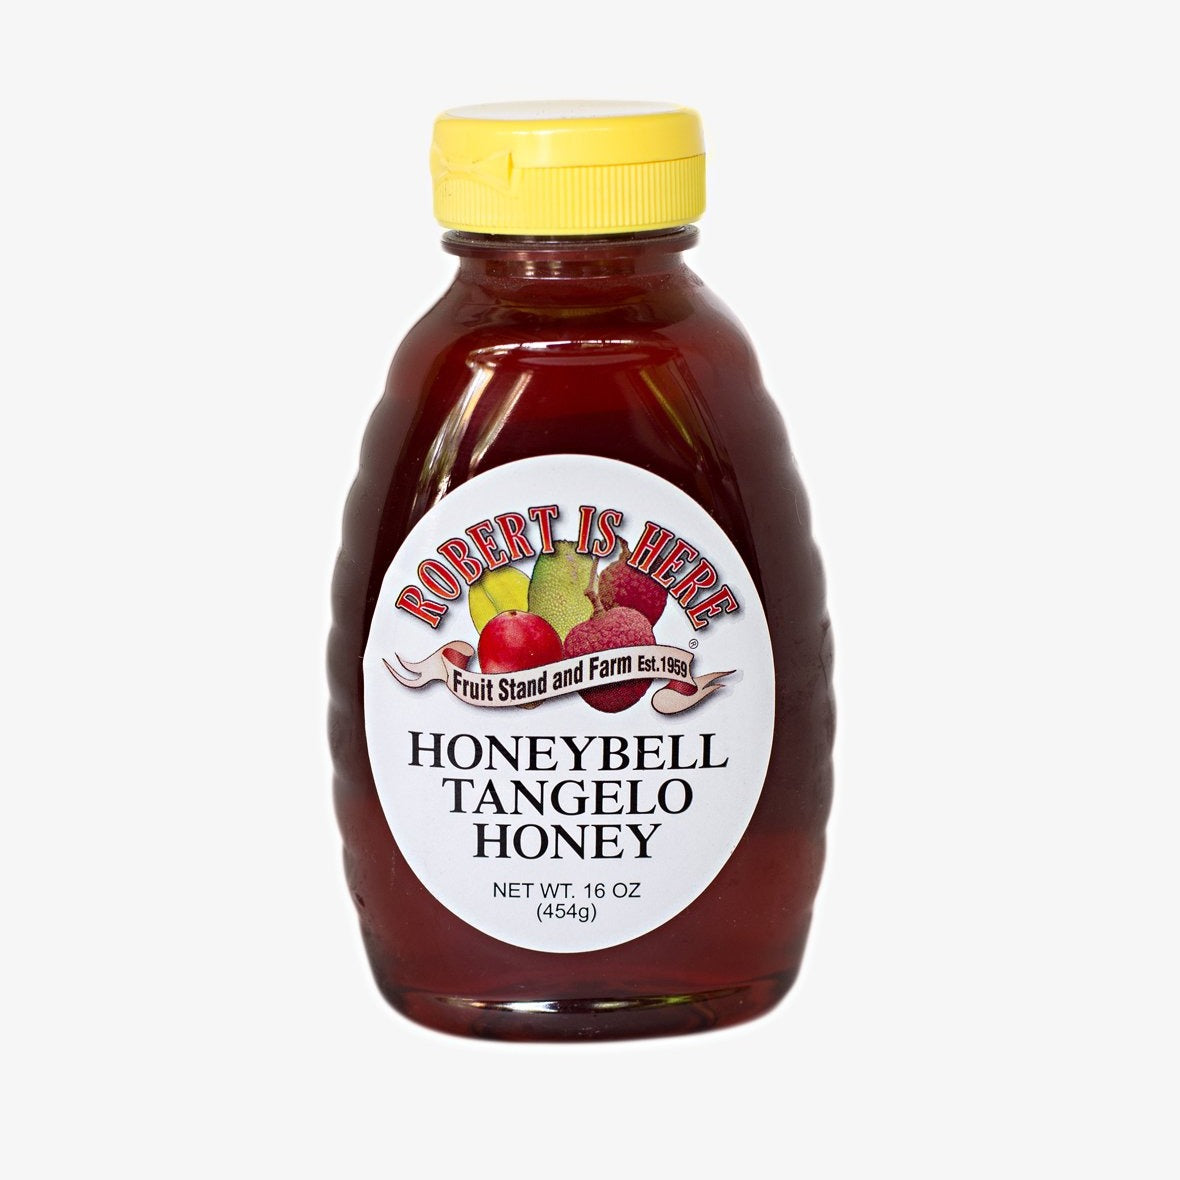 Honeybell Tangelo Honey